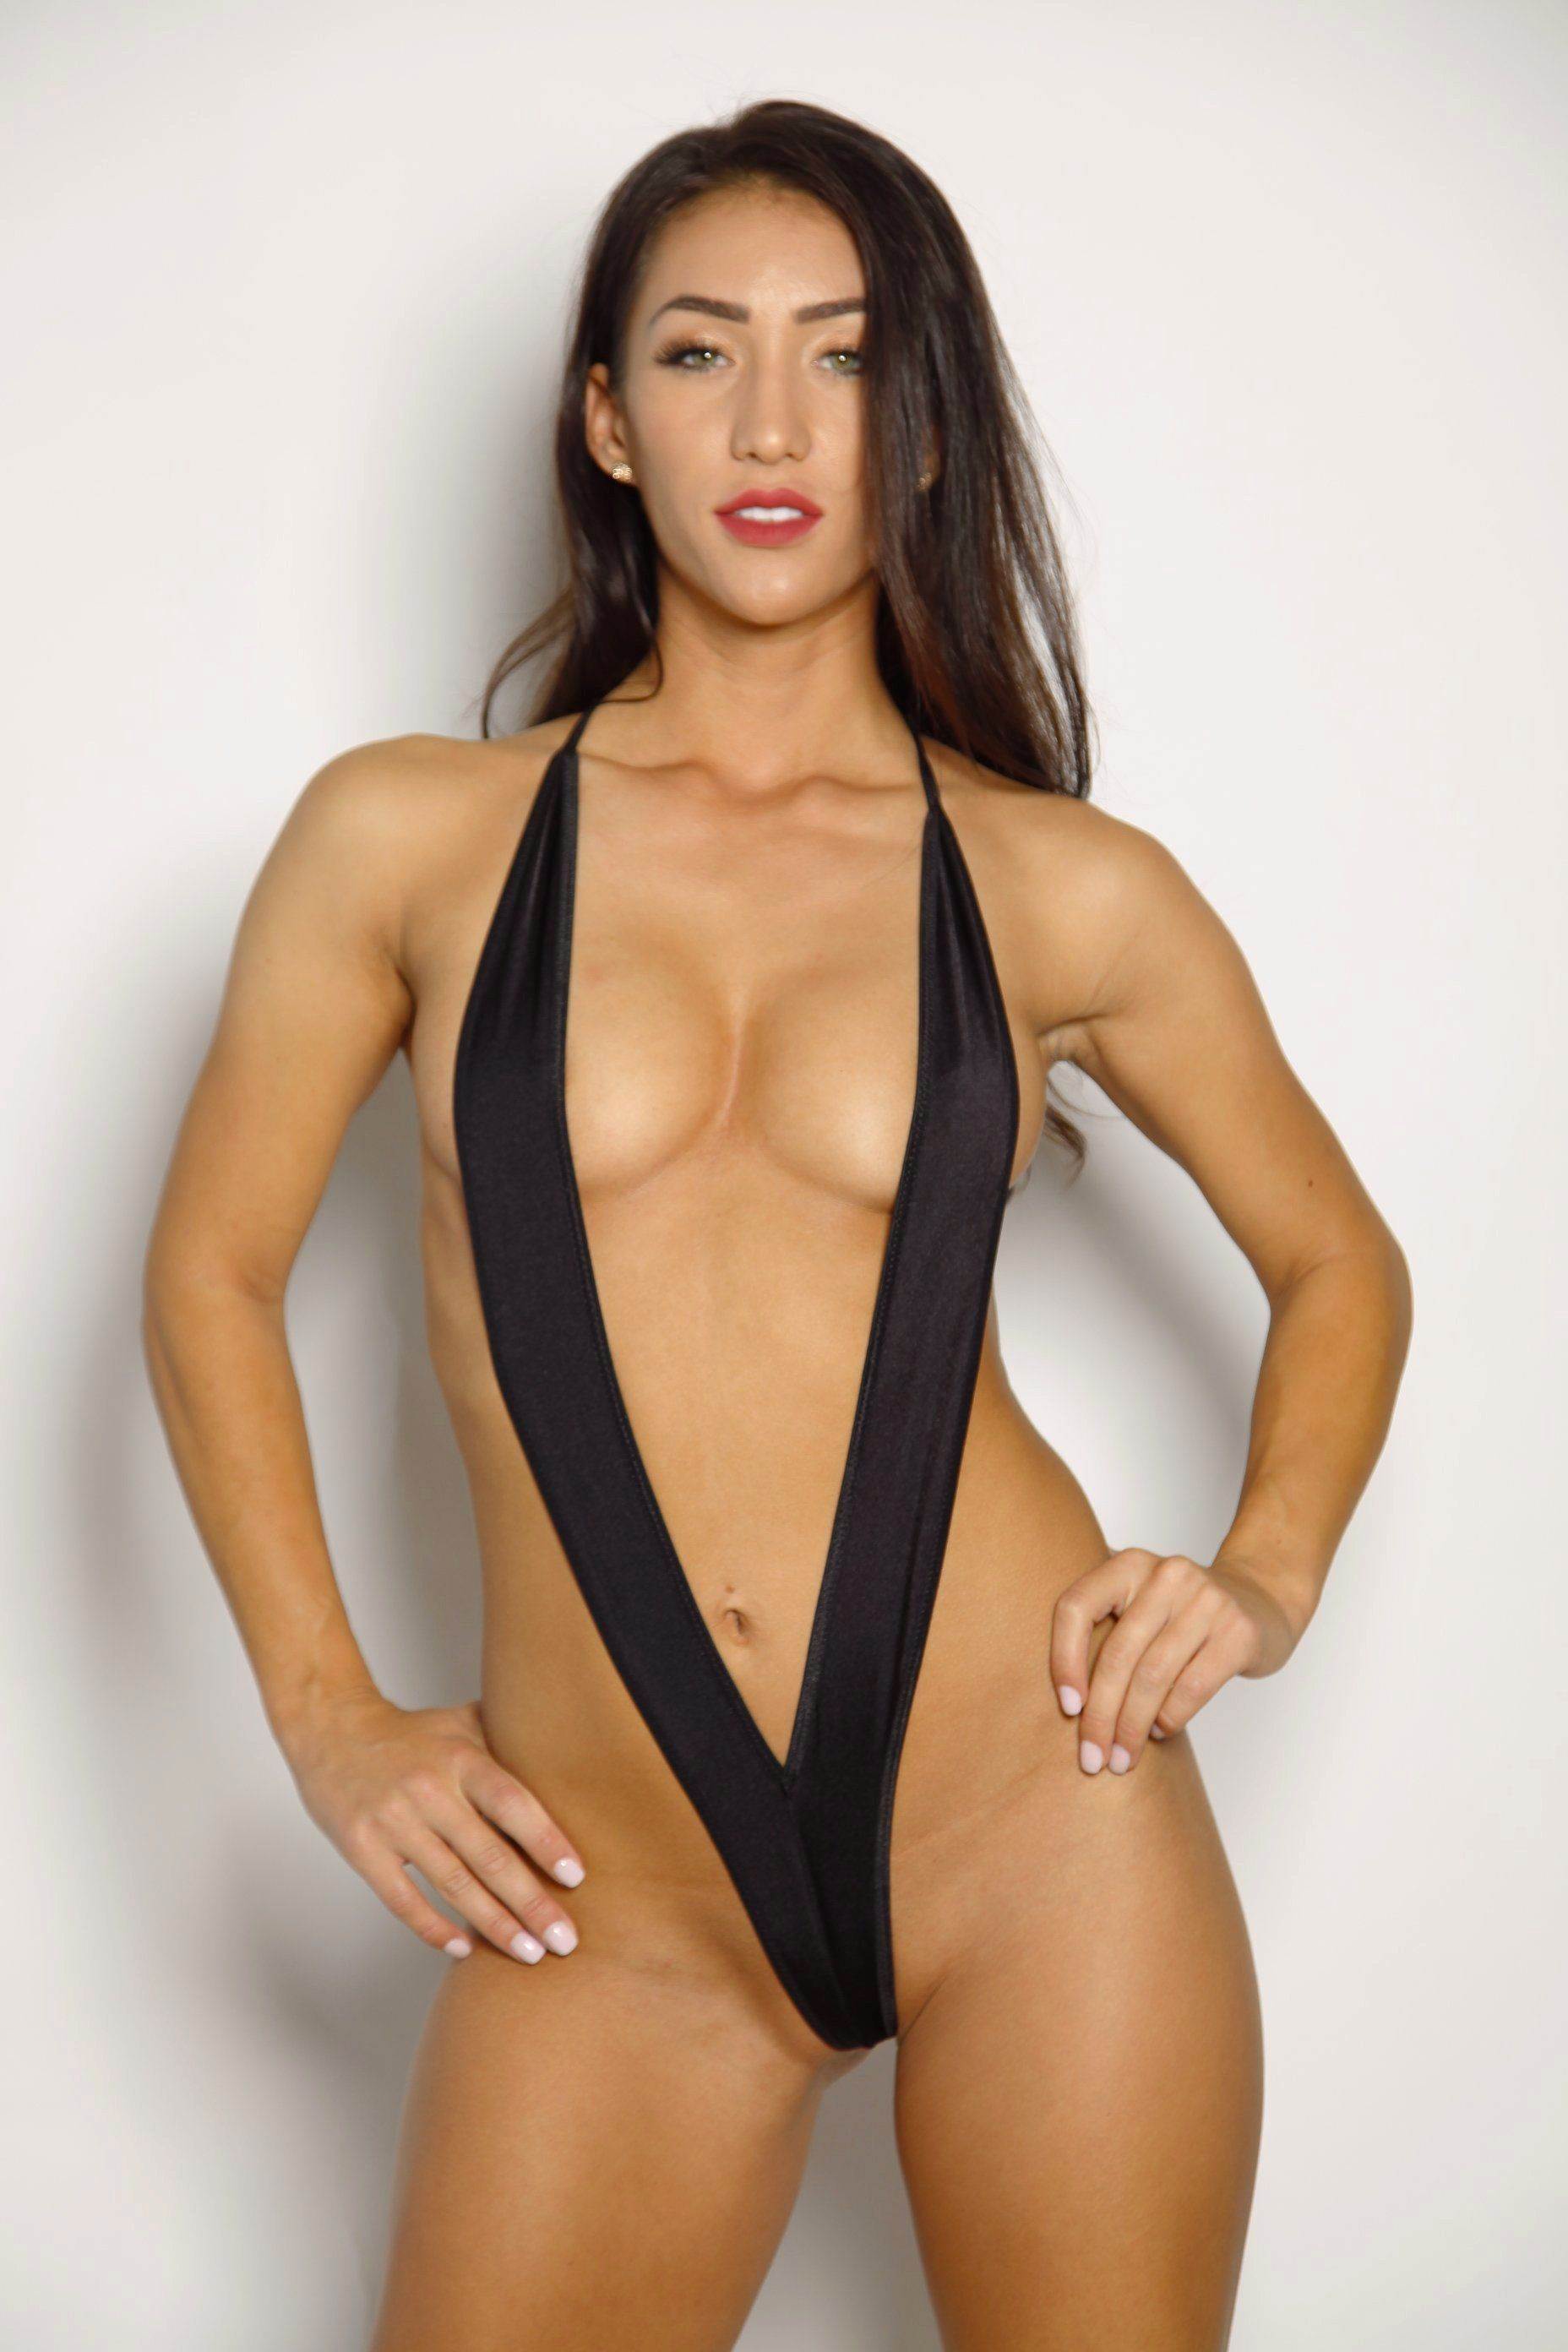 a1484e2612 Sexy Model in Bitsy's Bikinis Solid Black Slingshot Bikini String Extreme  Unlined Shop Slings Online